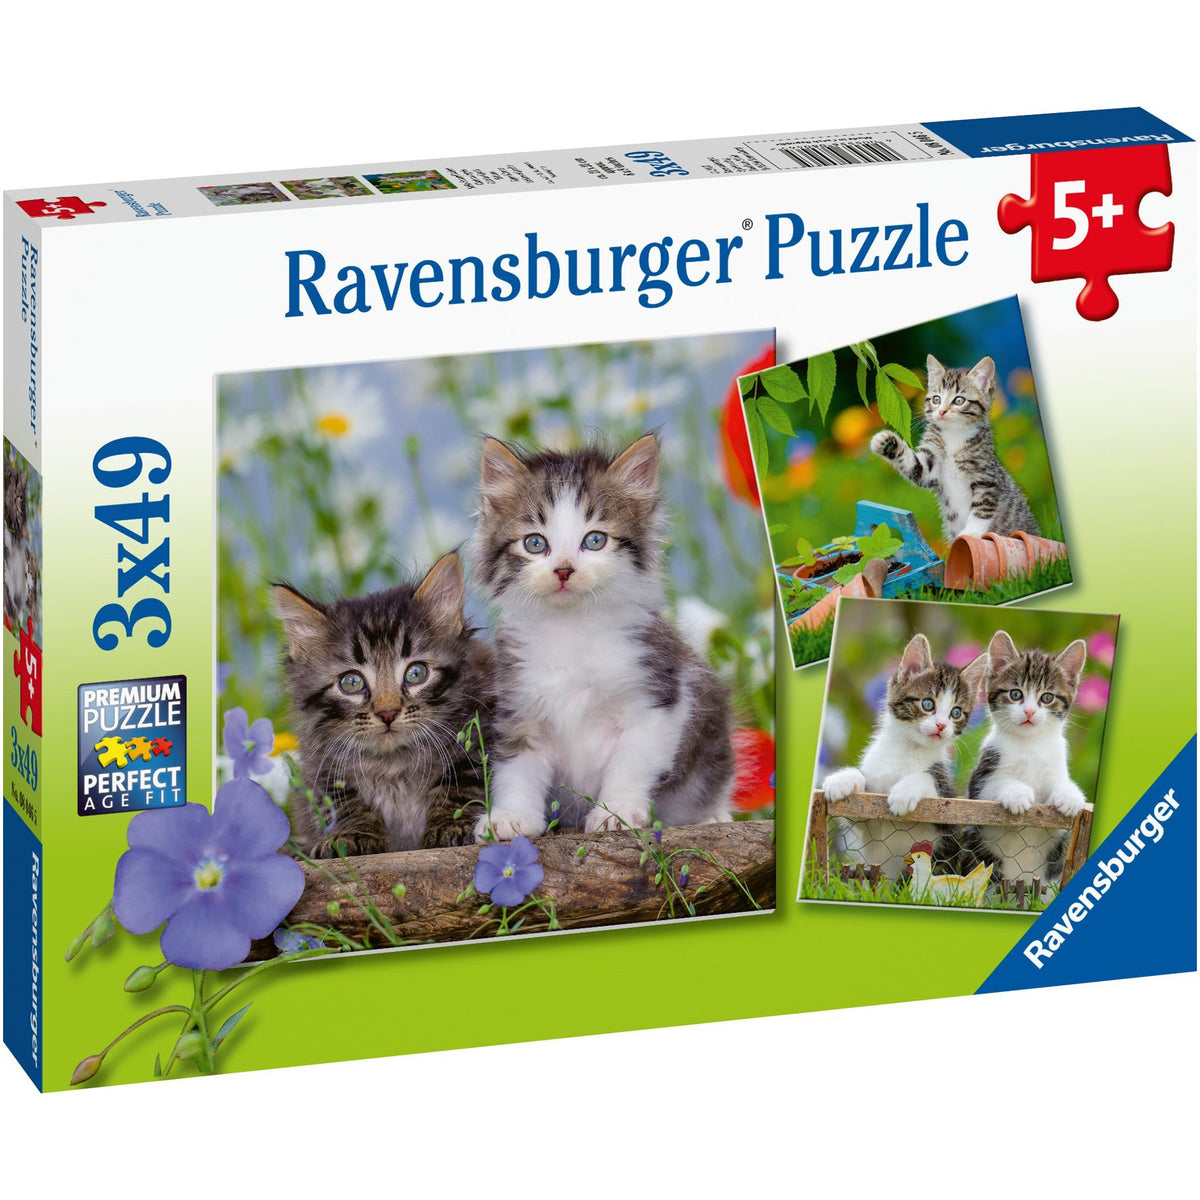 Ravensburger 3 x 49 Piece Puzzle Tiger Kittens 08046 canada ontario children kid jigsaw